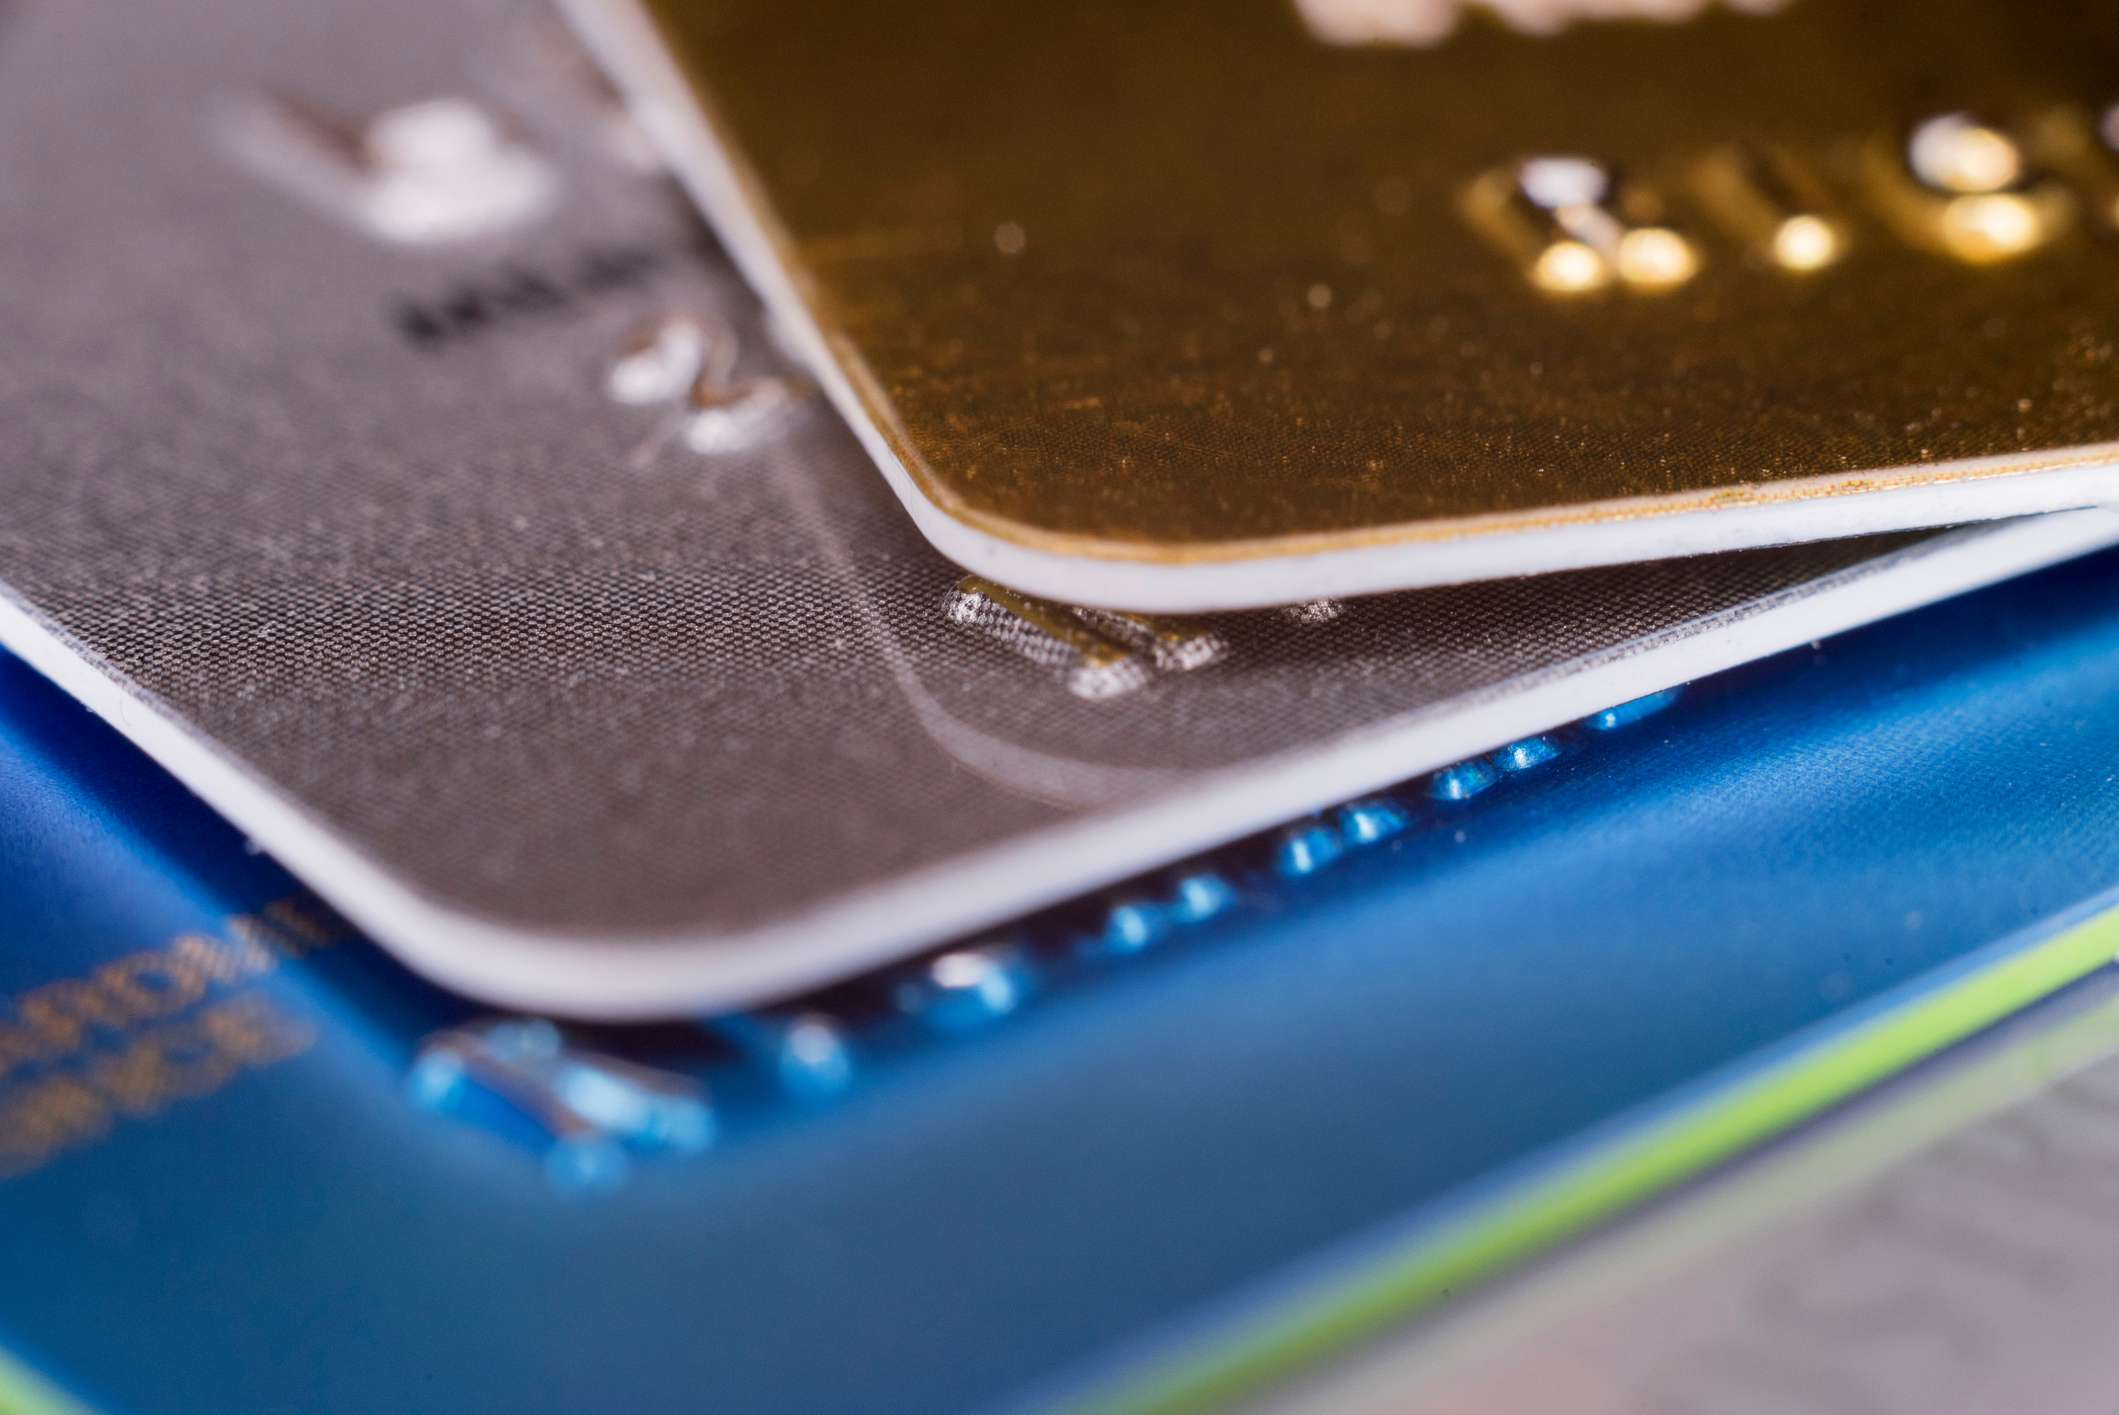 Close-up of a stack of credit cards